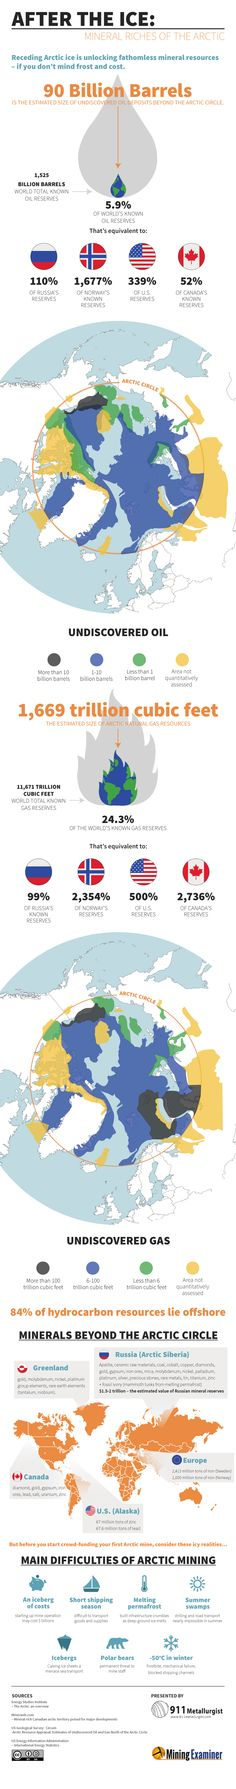 Infographic Ideas zerohedge infographic : Plans for militarization of Arctic under US control | Tony Seed's ...